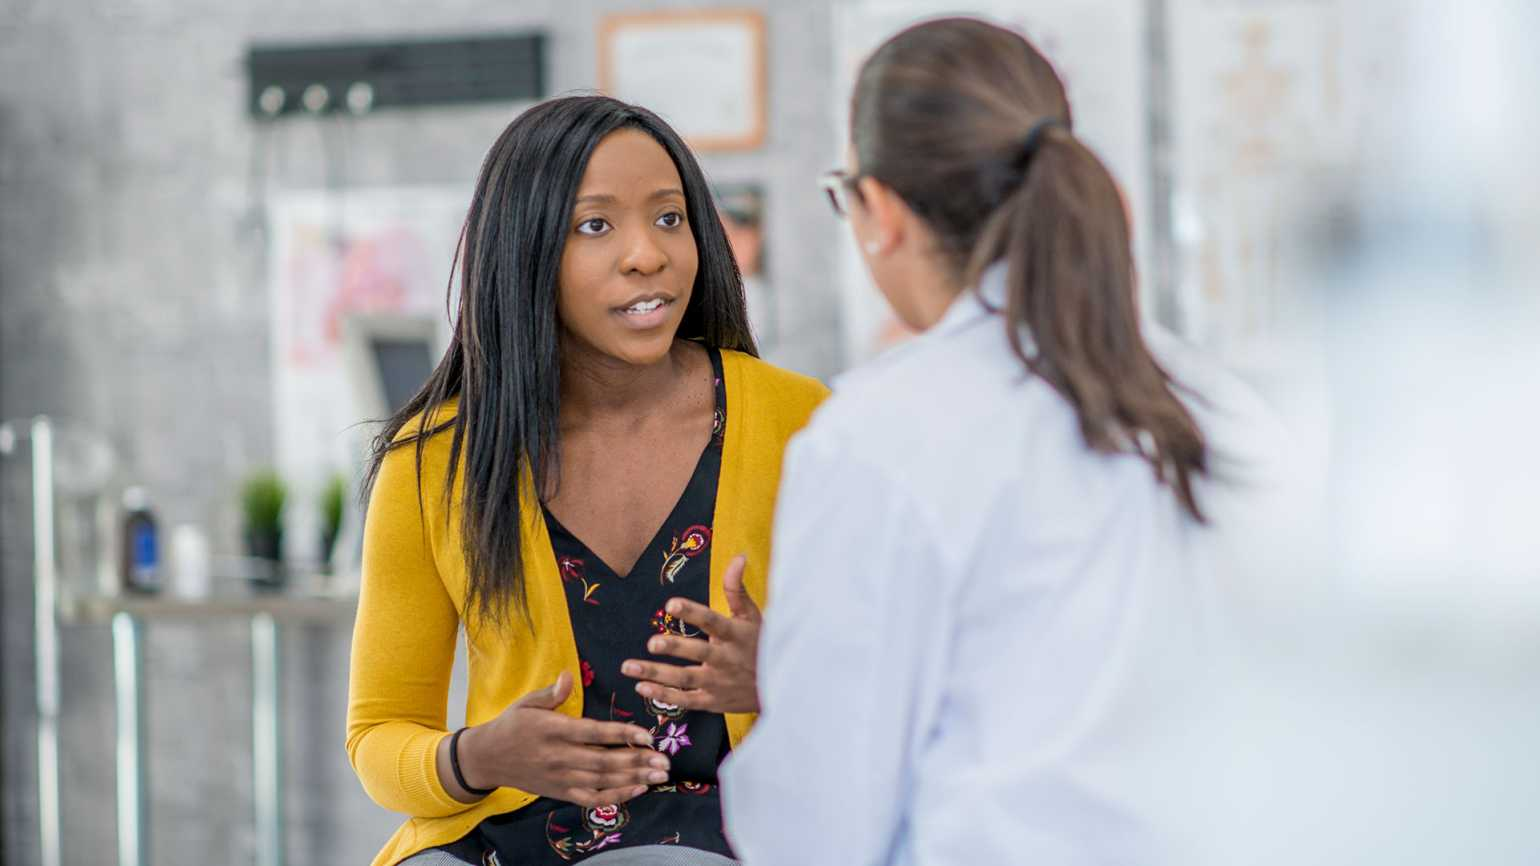 A woman consults with her doctor